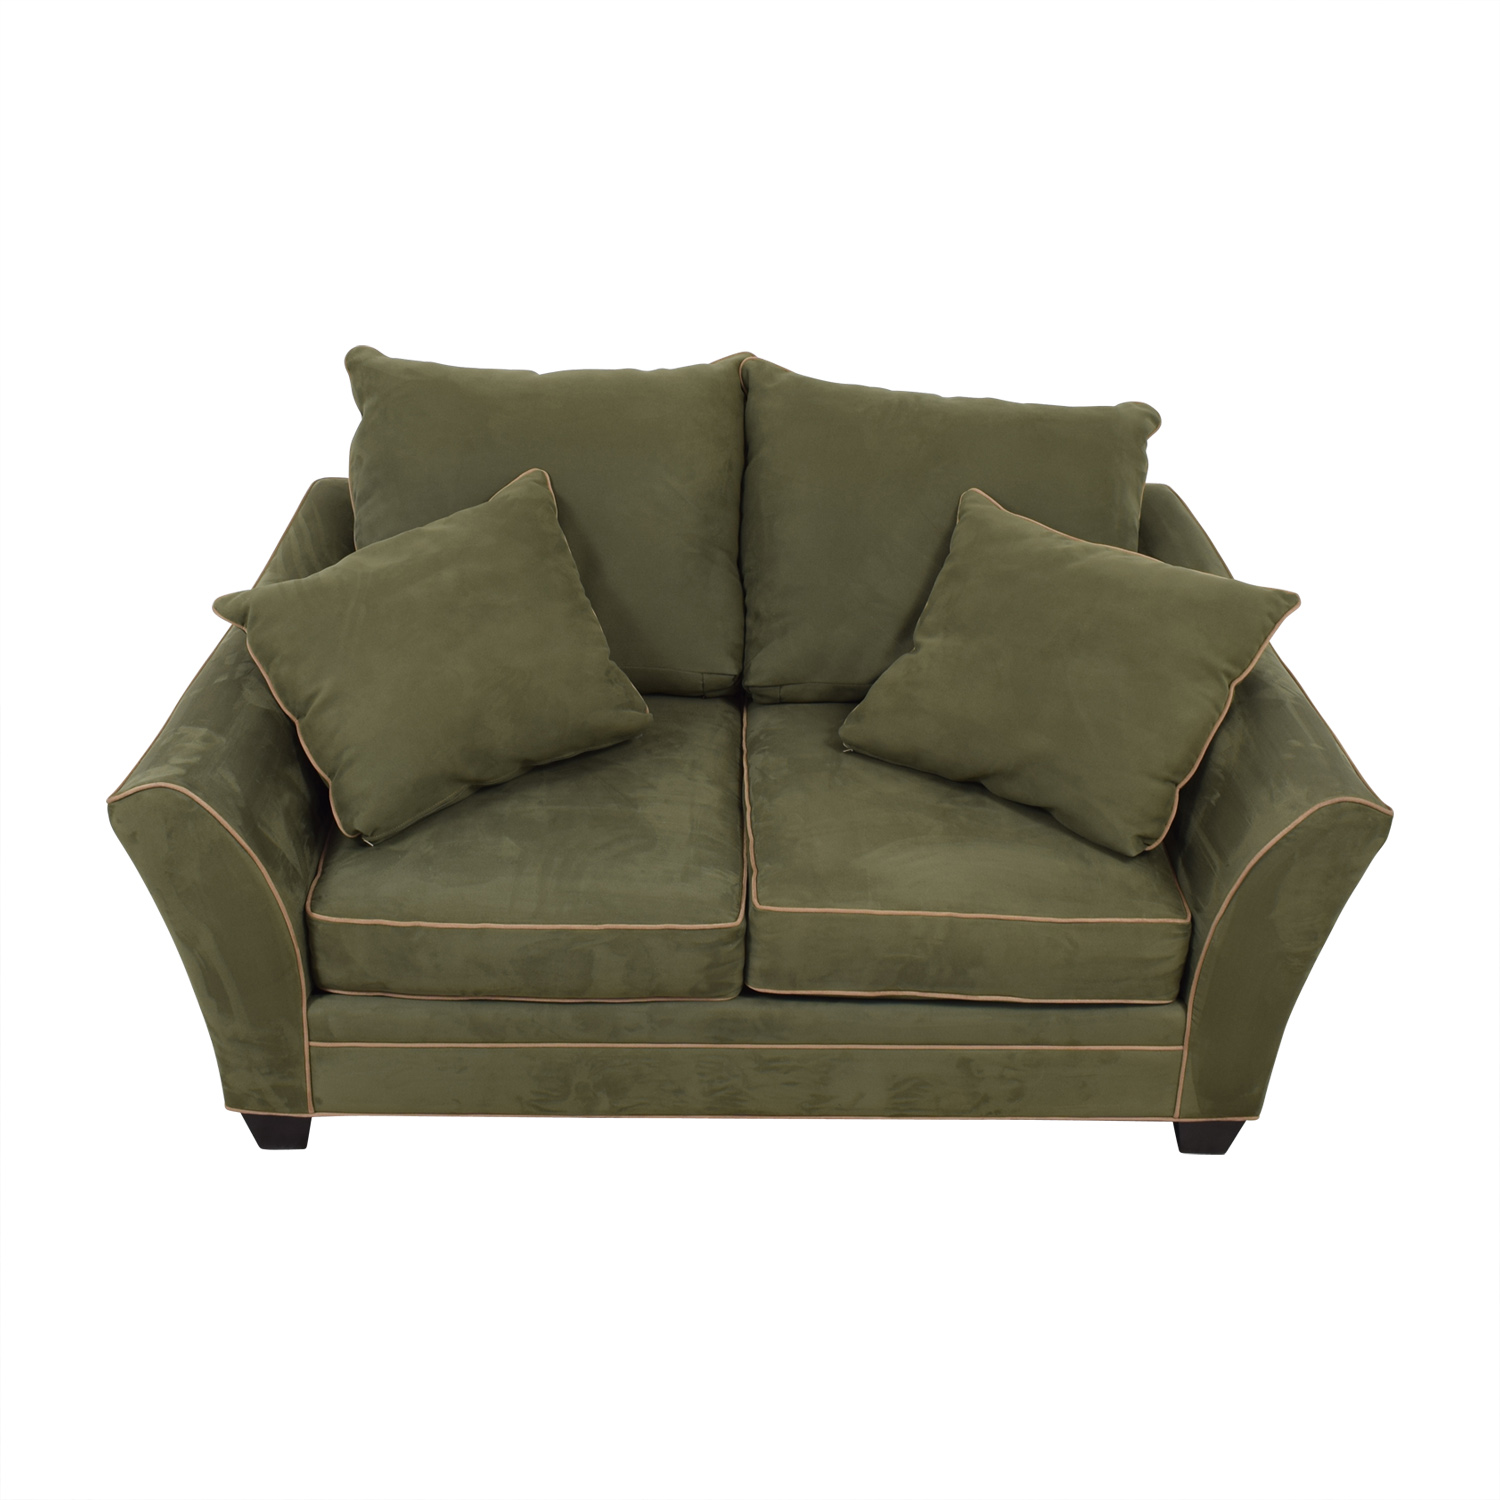 shop Raymour & Flanigan Briarwood Brown Two-Cushion Loveseat Raymour & Flanigan